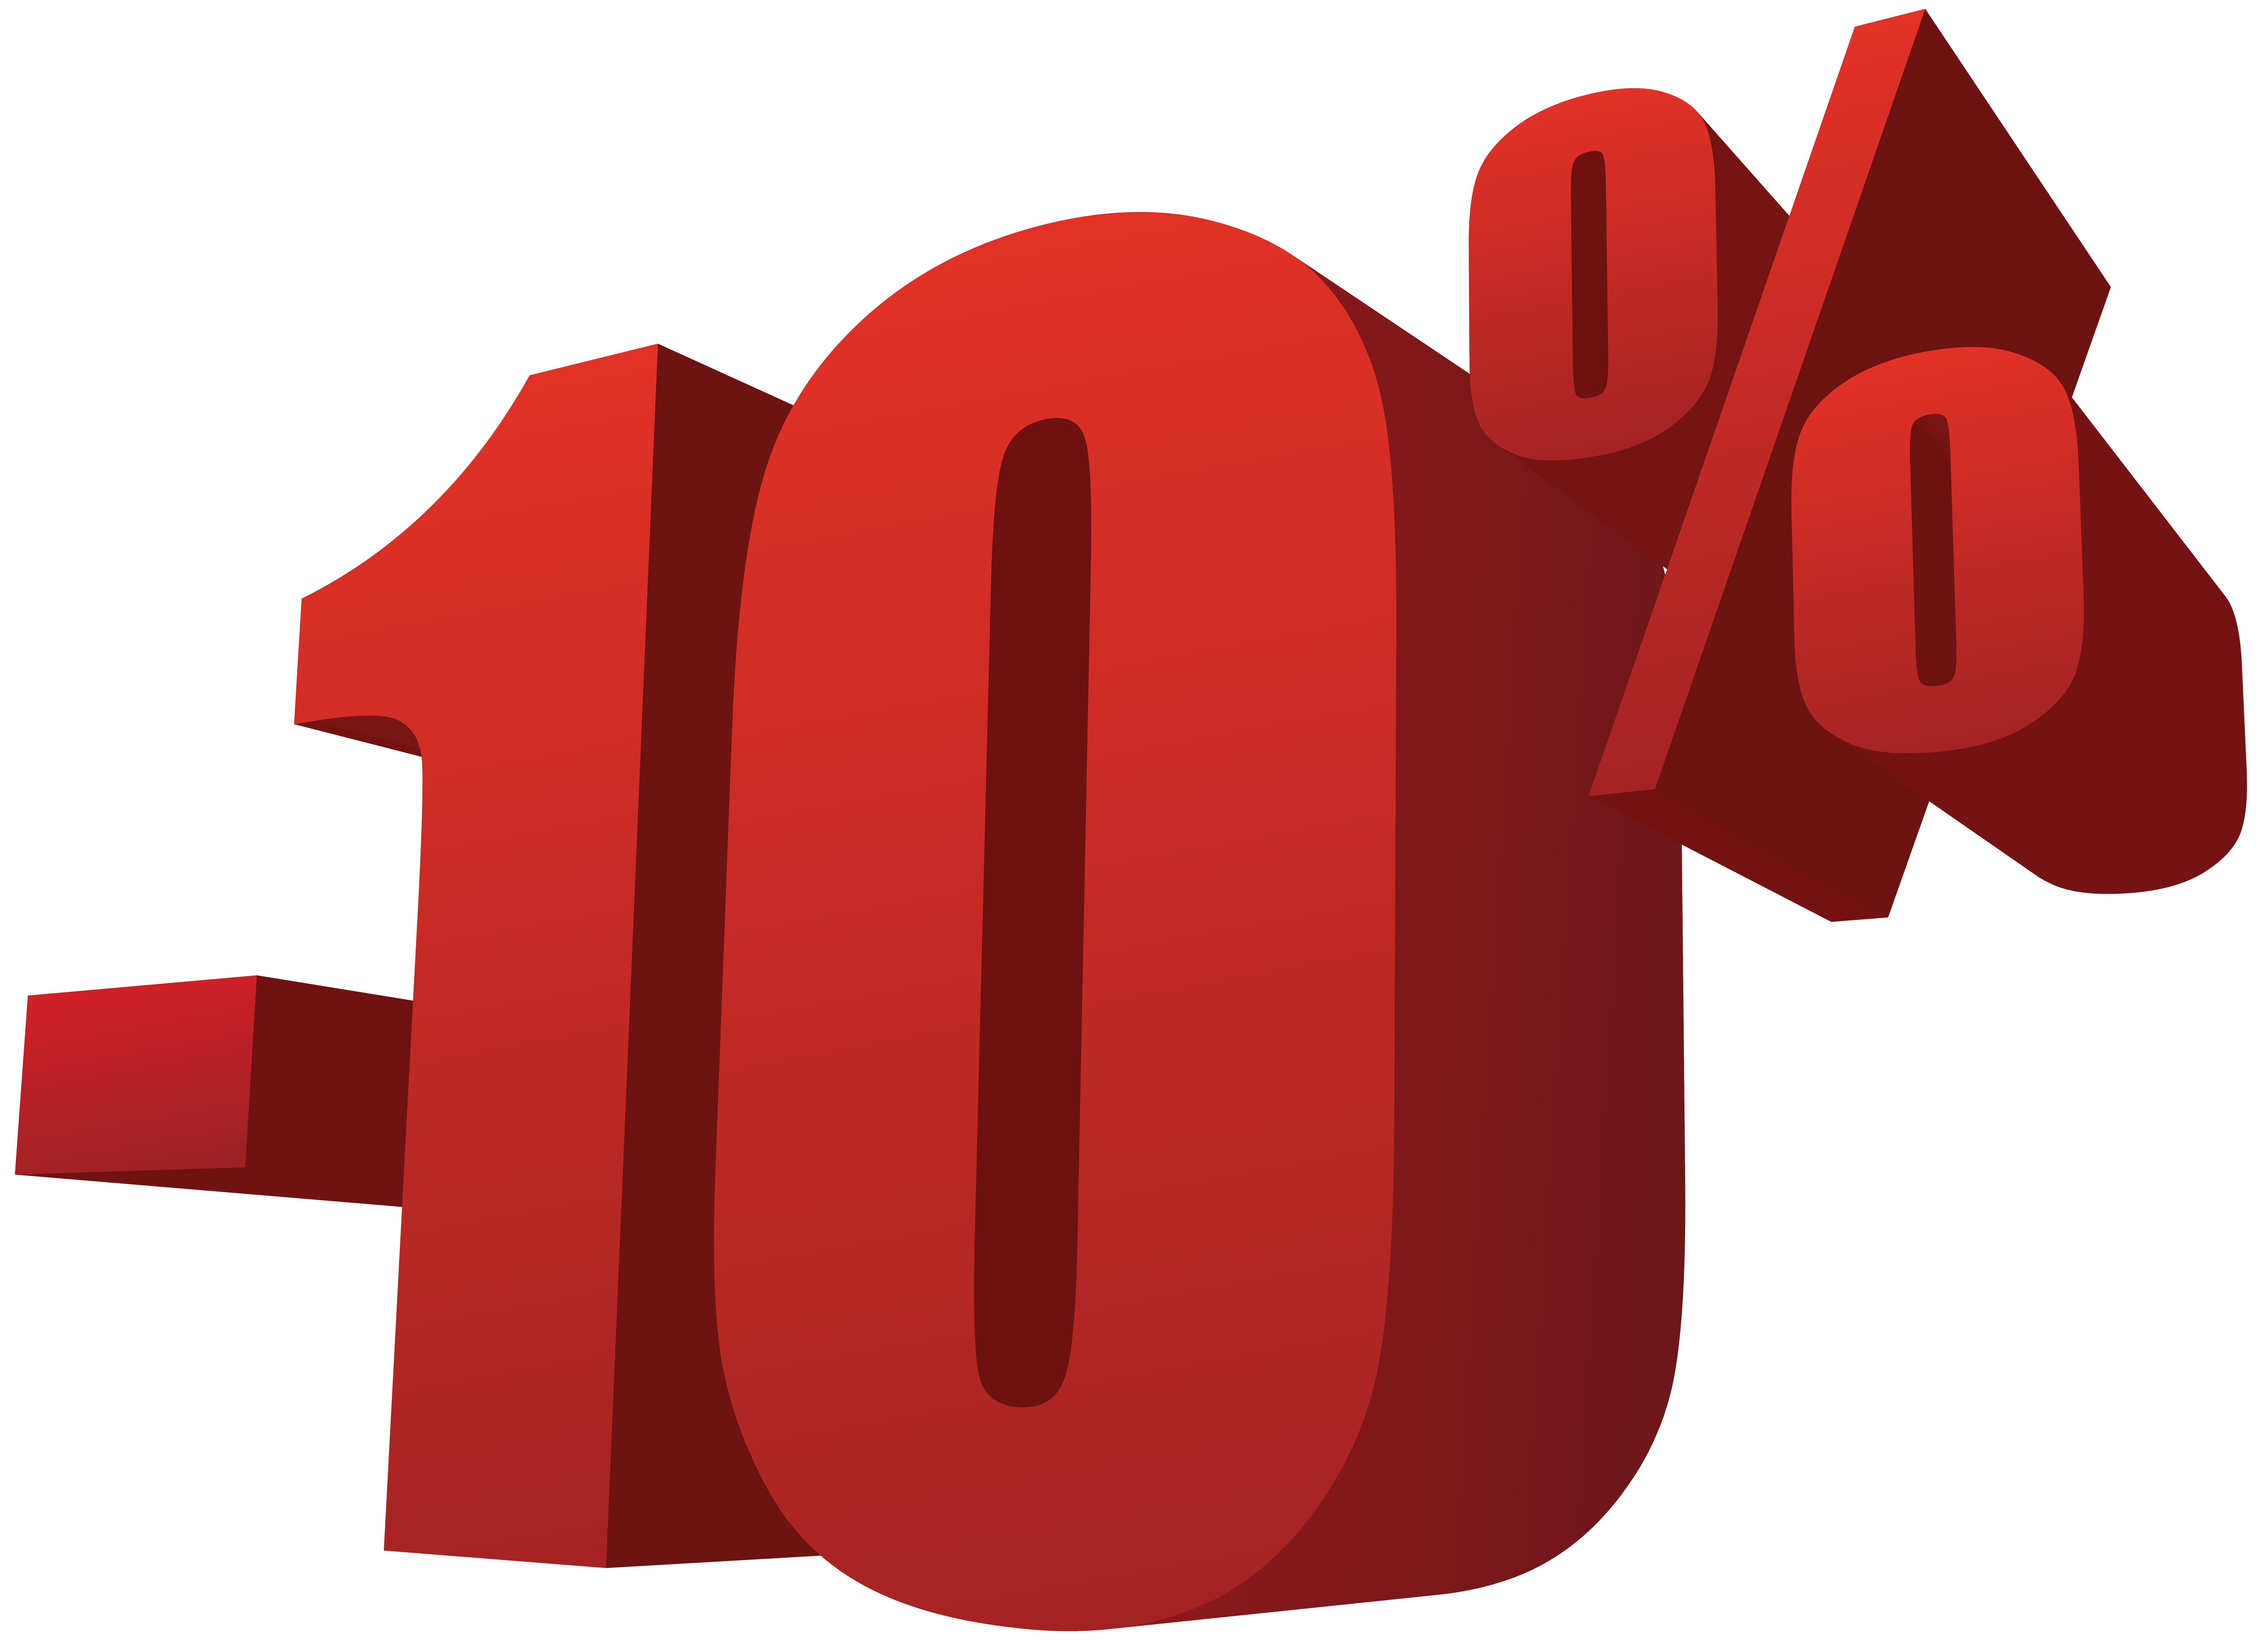 15 Percent Off 2 Or More Items Hi Guys I M Currently Offering 15 Percent 2 Or More Items In My Closet But I Will Happil Clothes Design Fashion Tips My Love